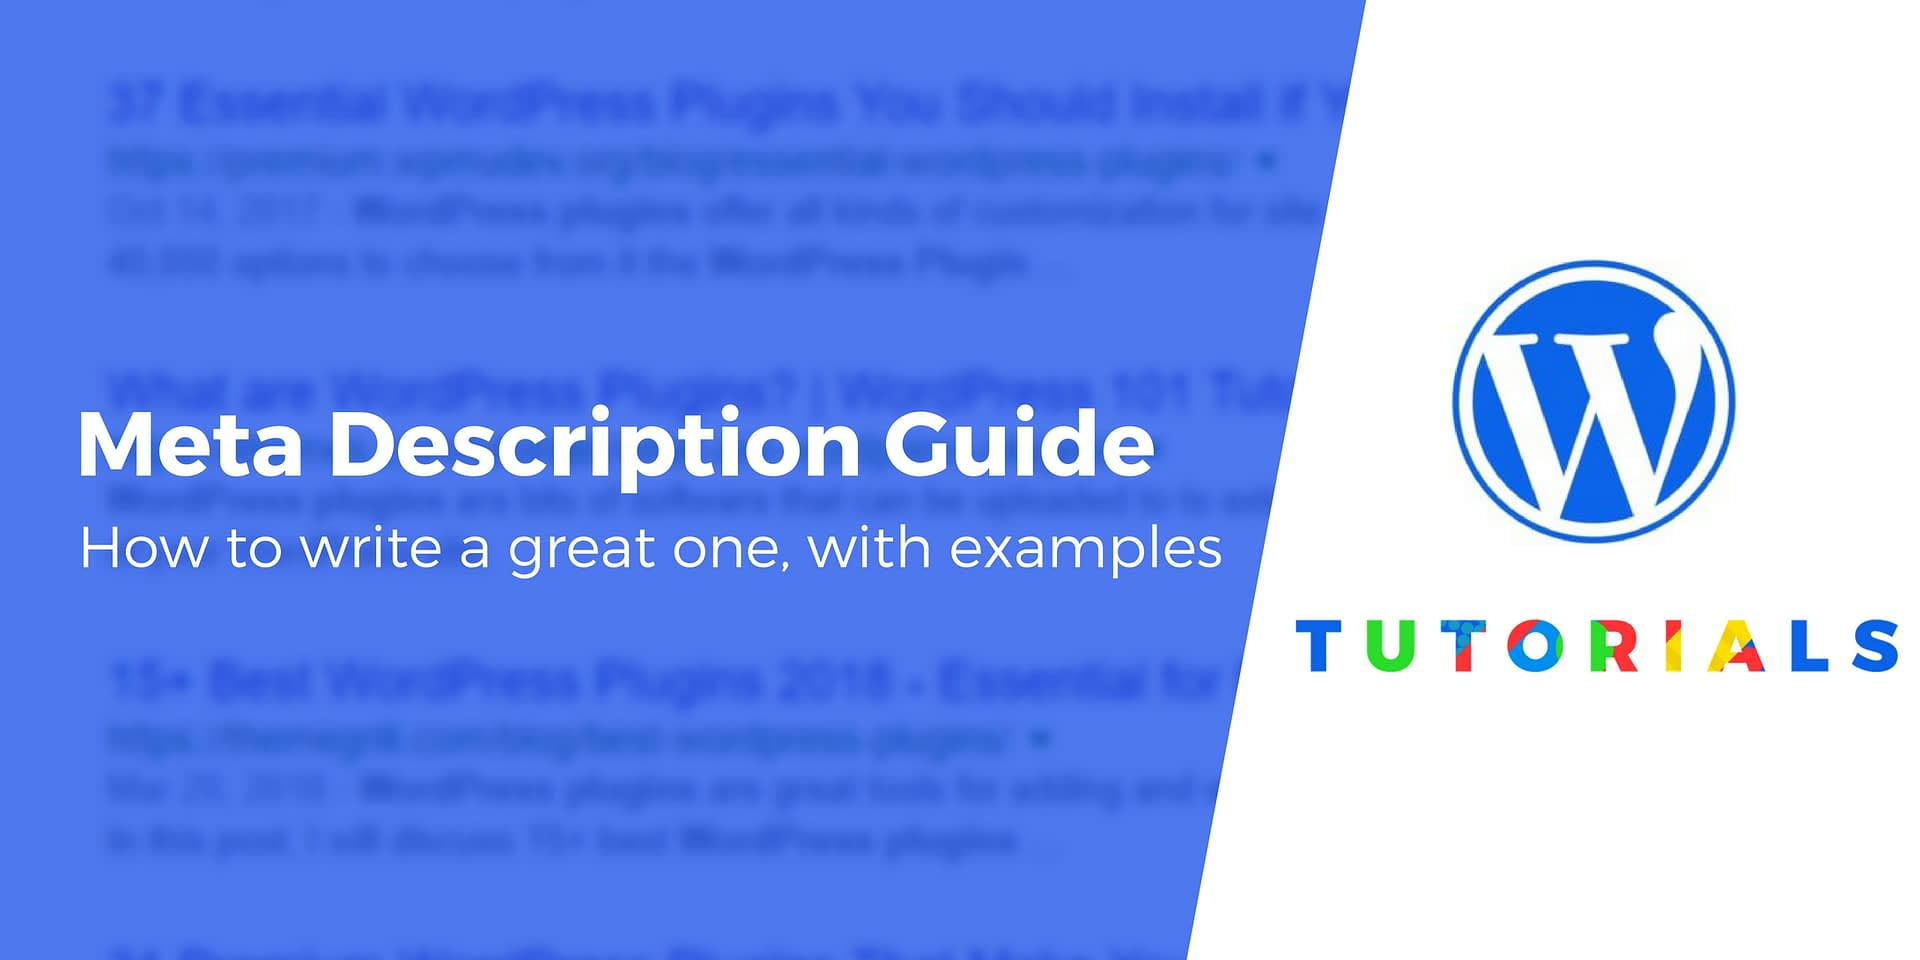 15 Meta Description Examples, Plus How to Write a Perfect